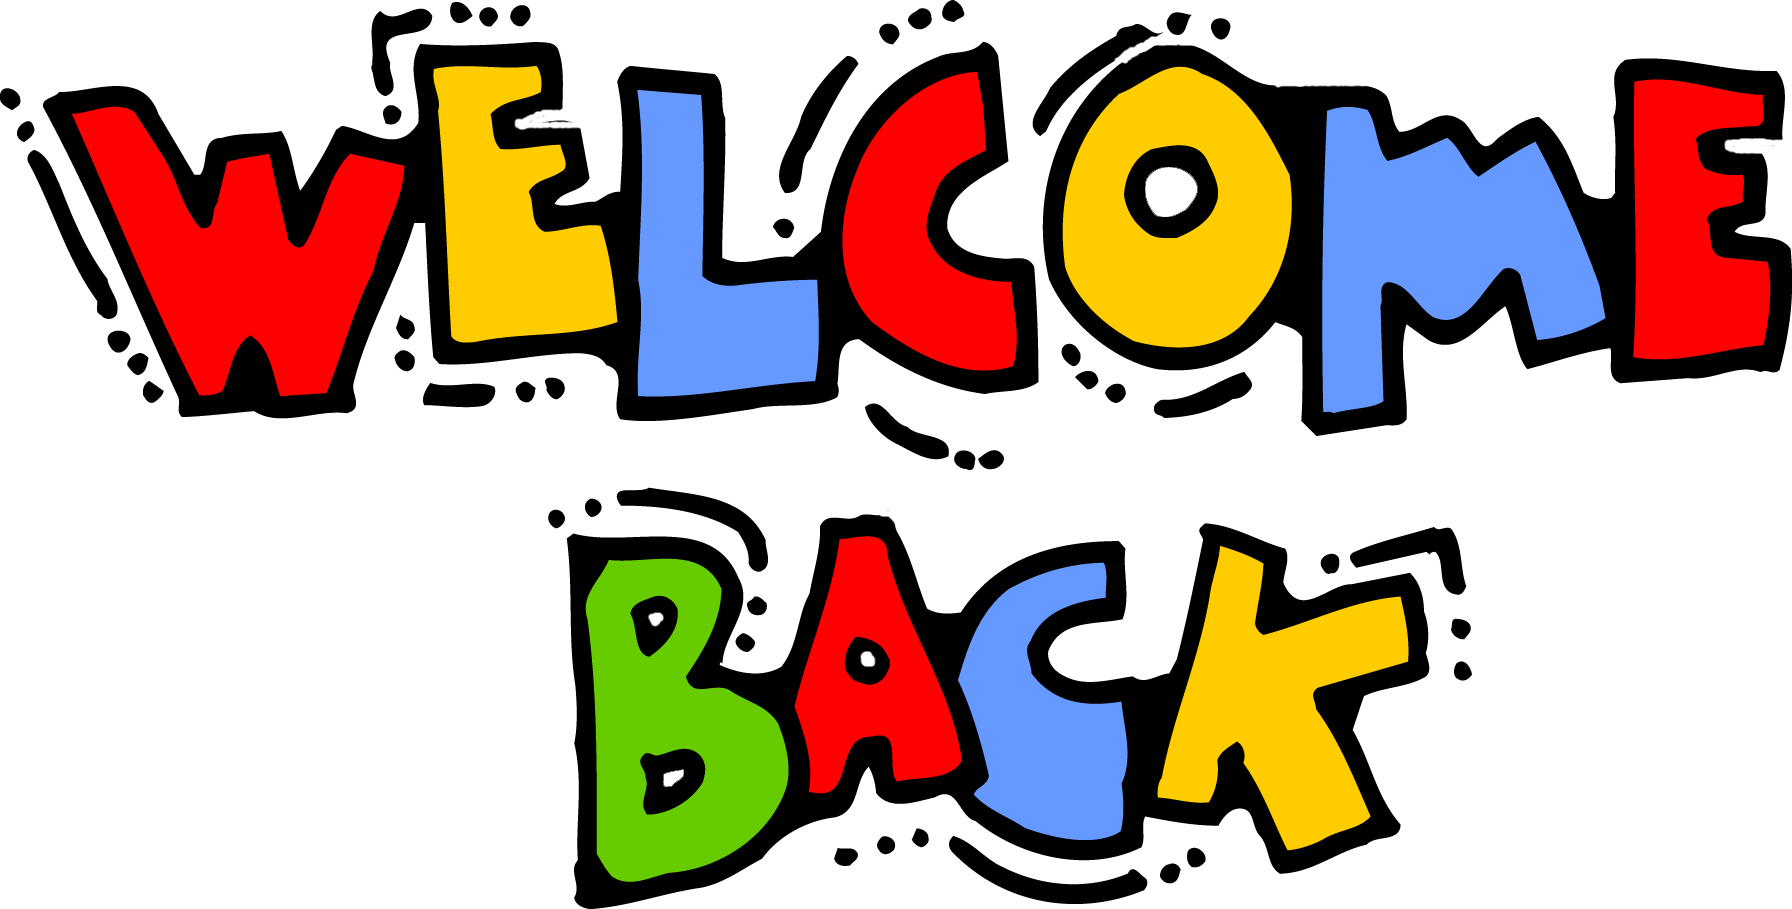 Welcome Back Colorful Text Clipart Pictu-Welcome Back Colorful Text Clipart Picture-12